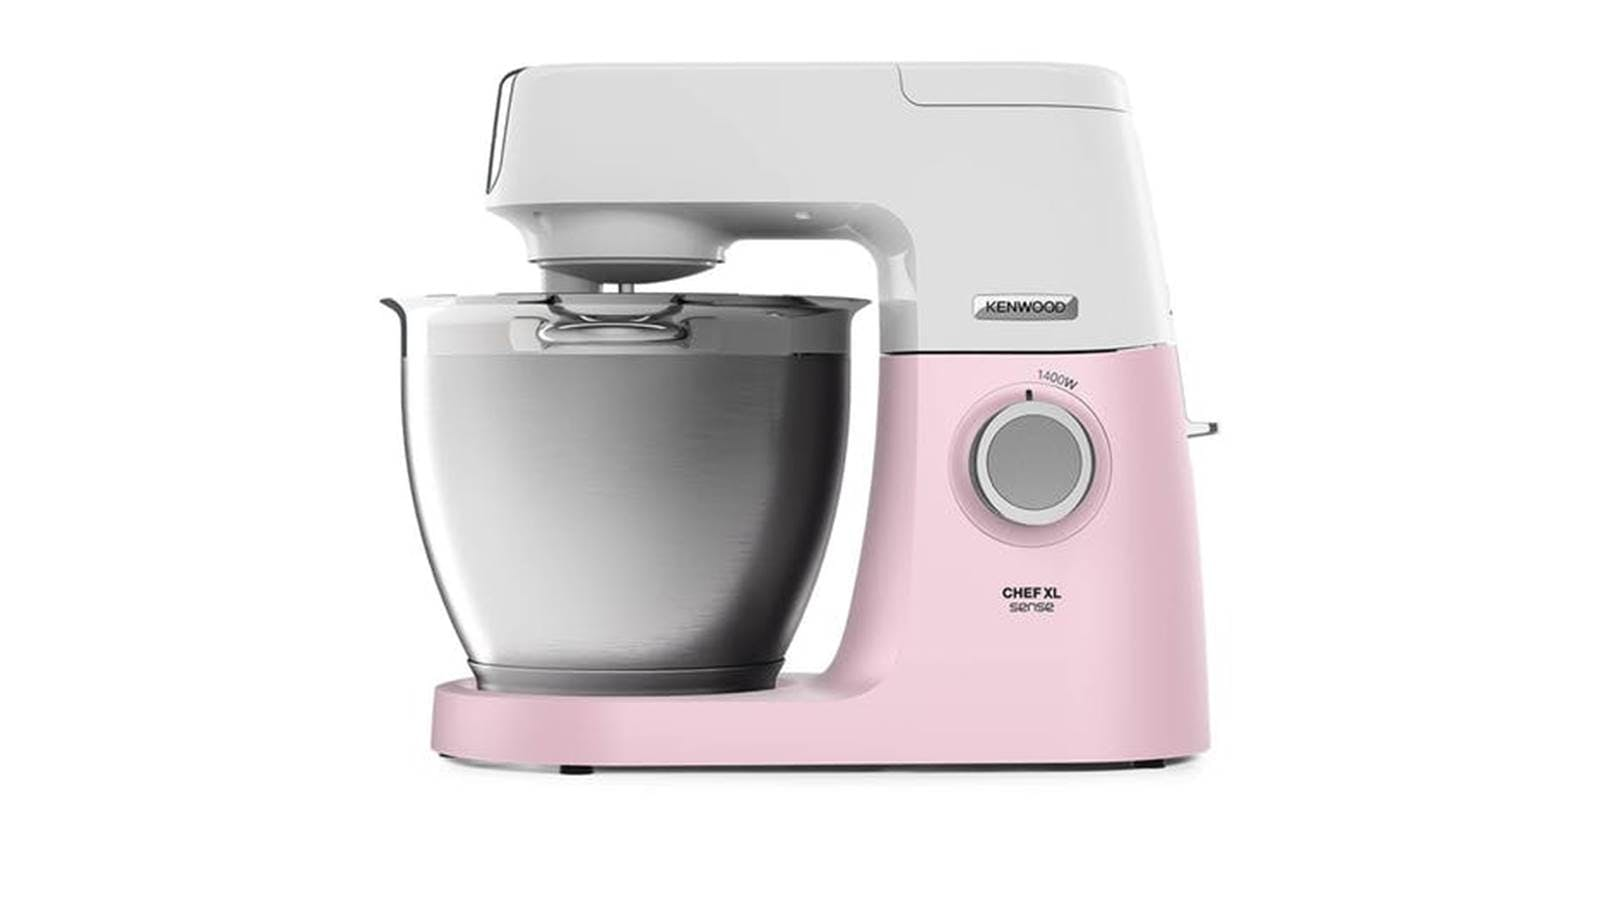 kenwood kvl 6100p chef sense xl mixer pink harvey norman malaysia. Black Bedroom Furniture Sets. Home Design Ideas